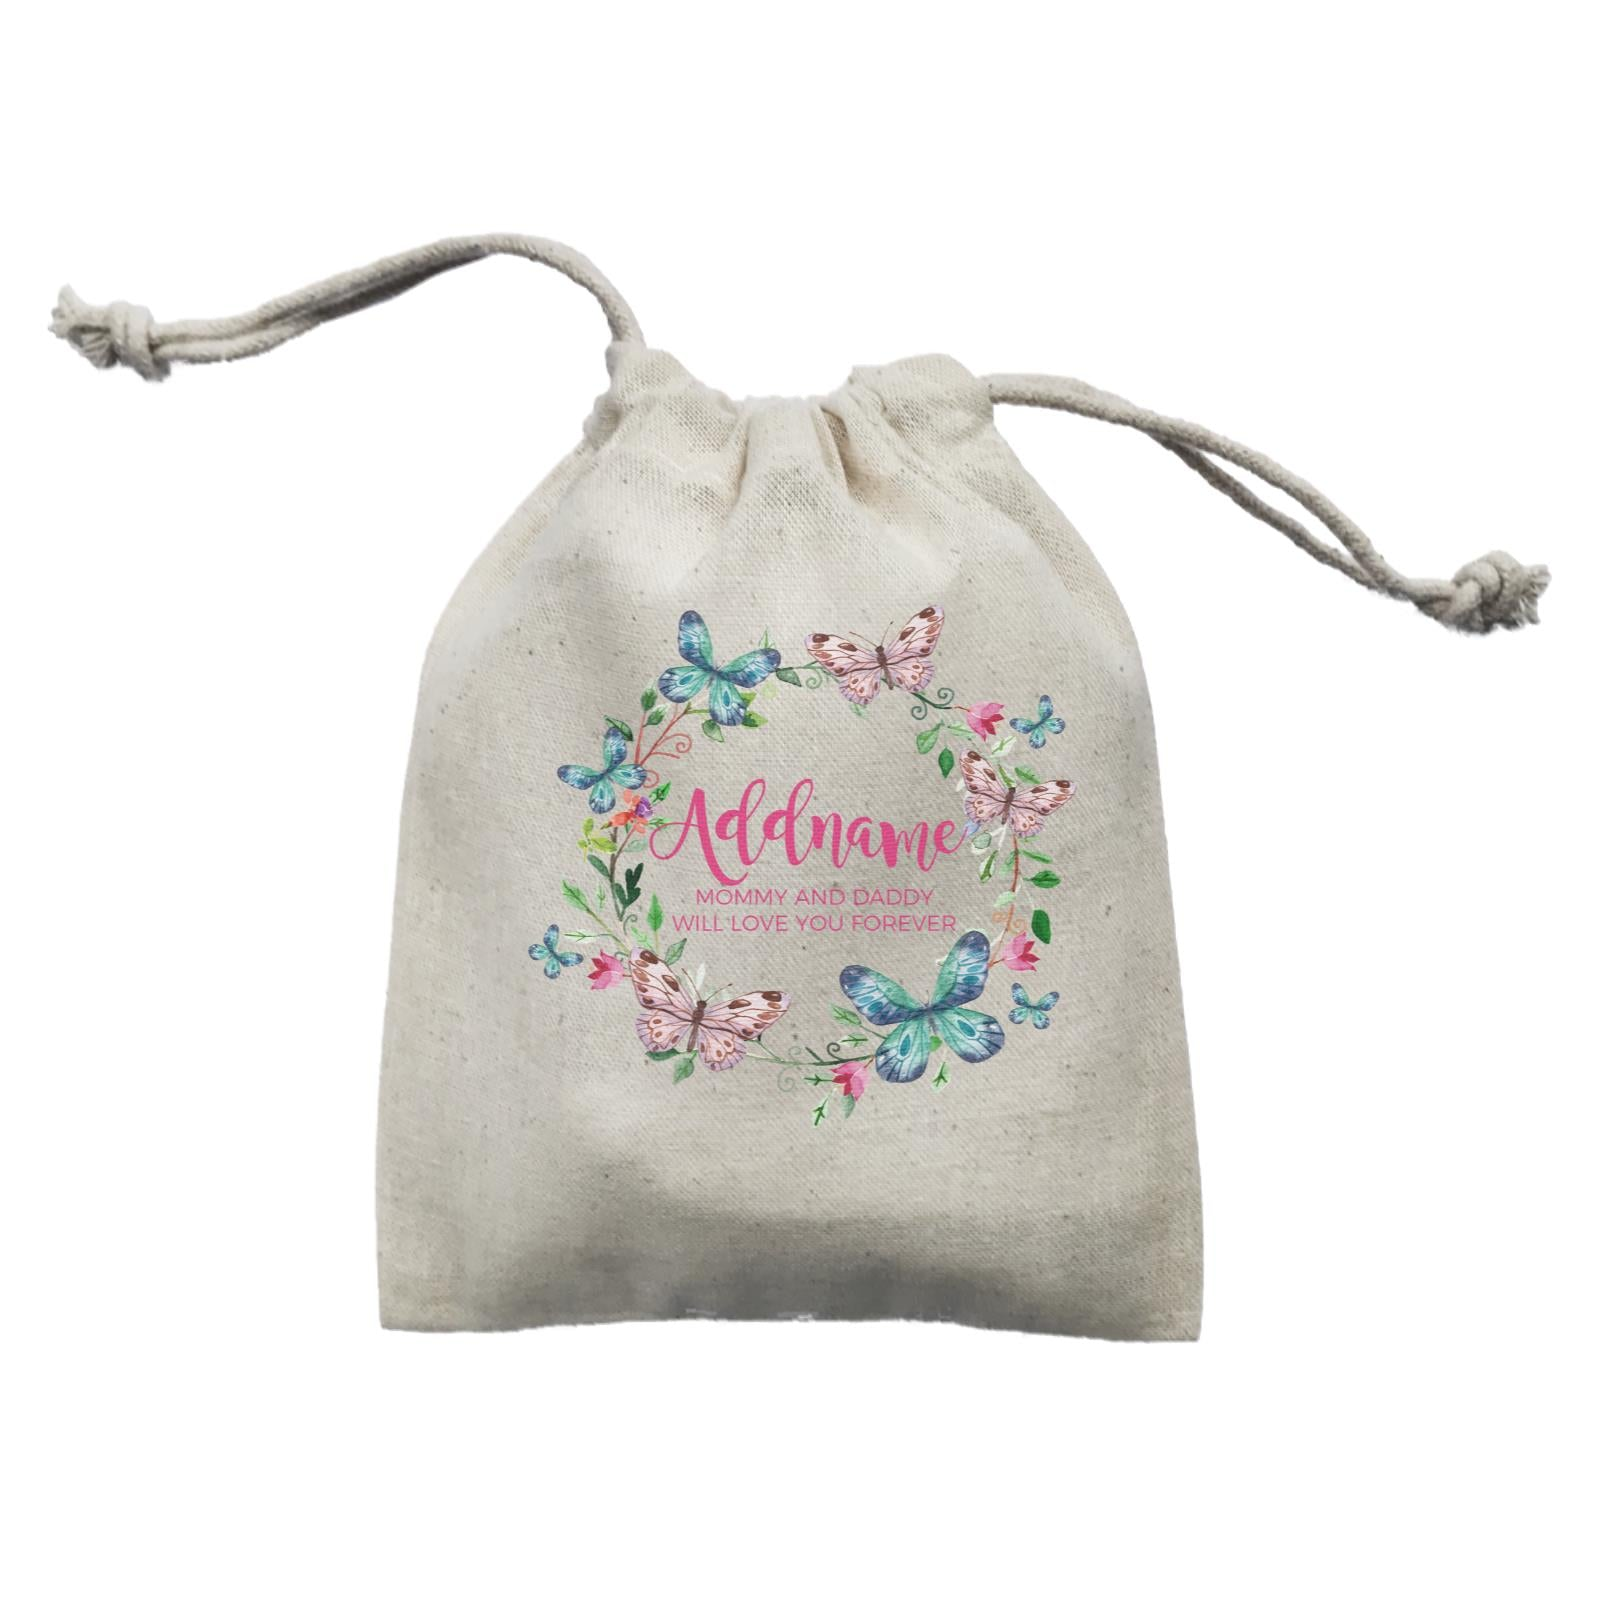 Colourful Butterflies Wreath Personalizable with Name and Text Mini Accessories Mini Pouch